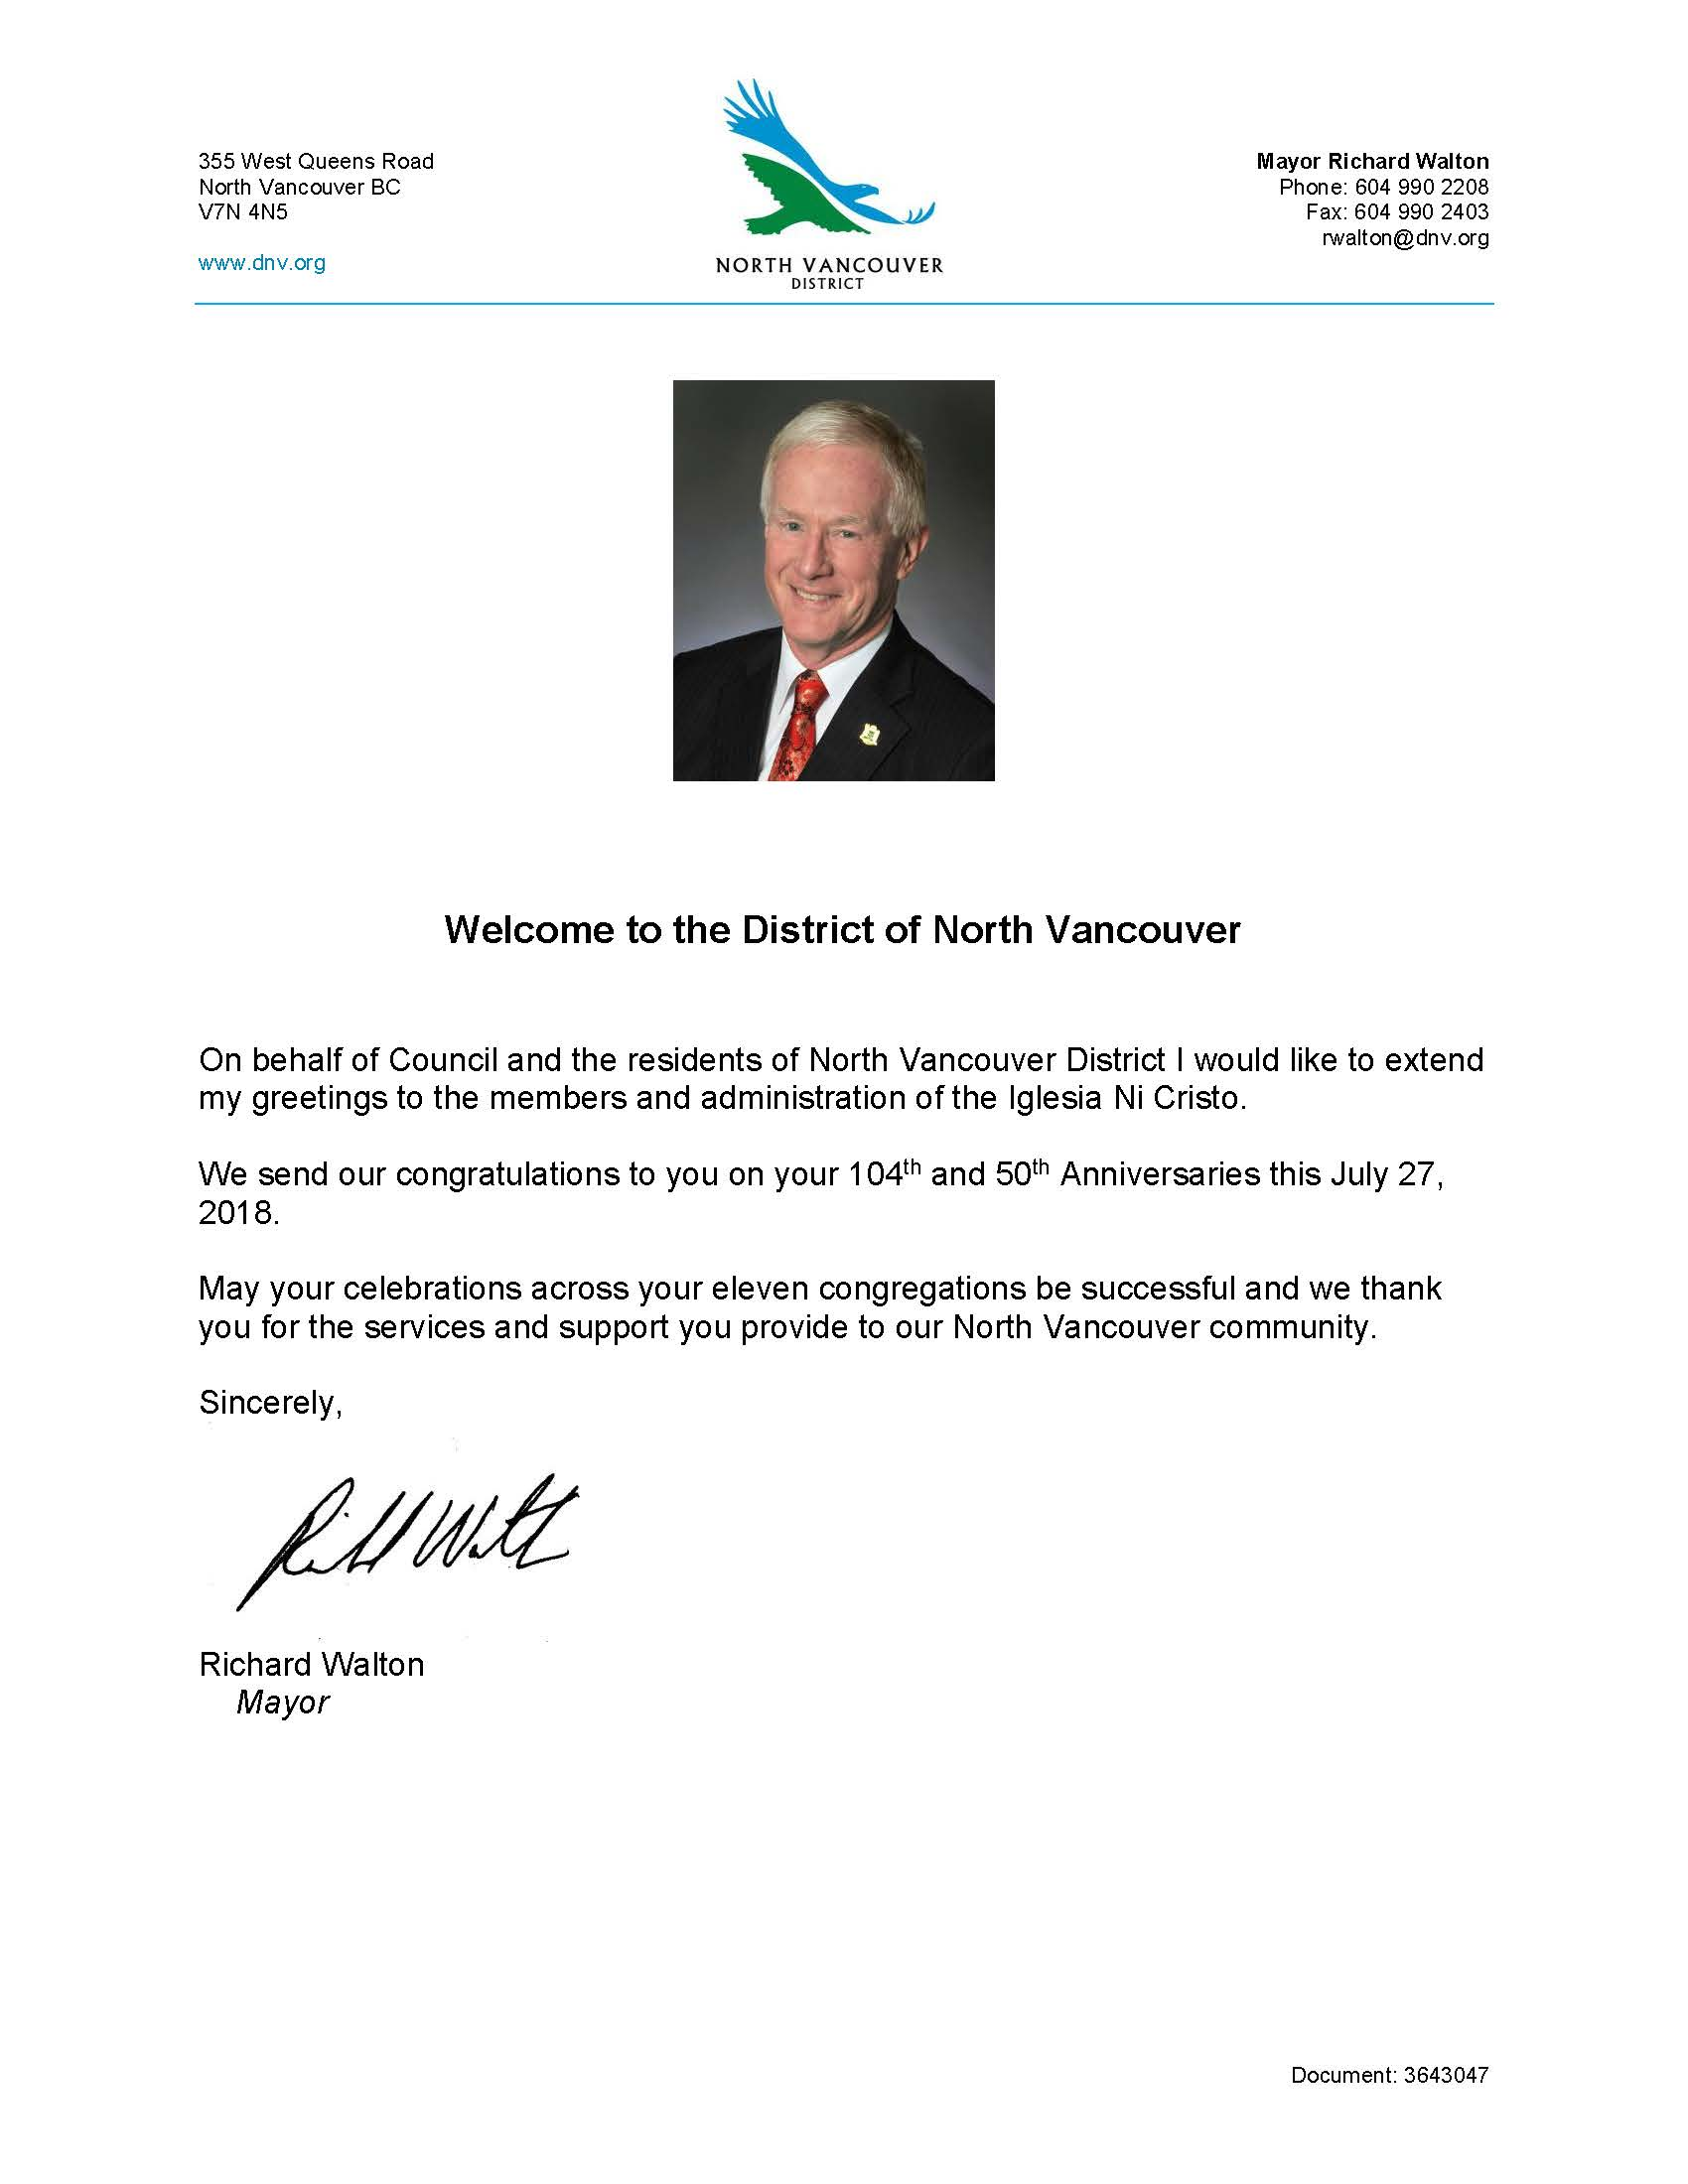 Mayor Greetings District of North Vancouver